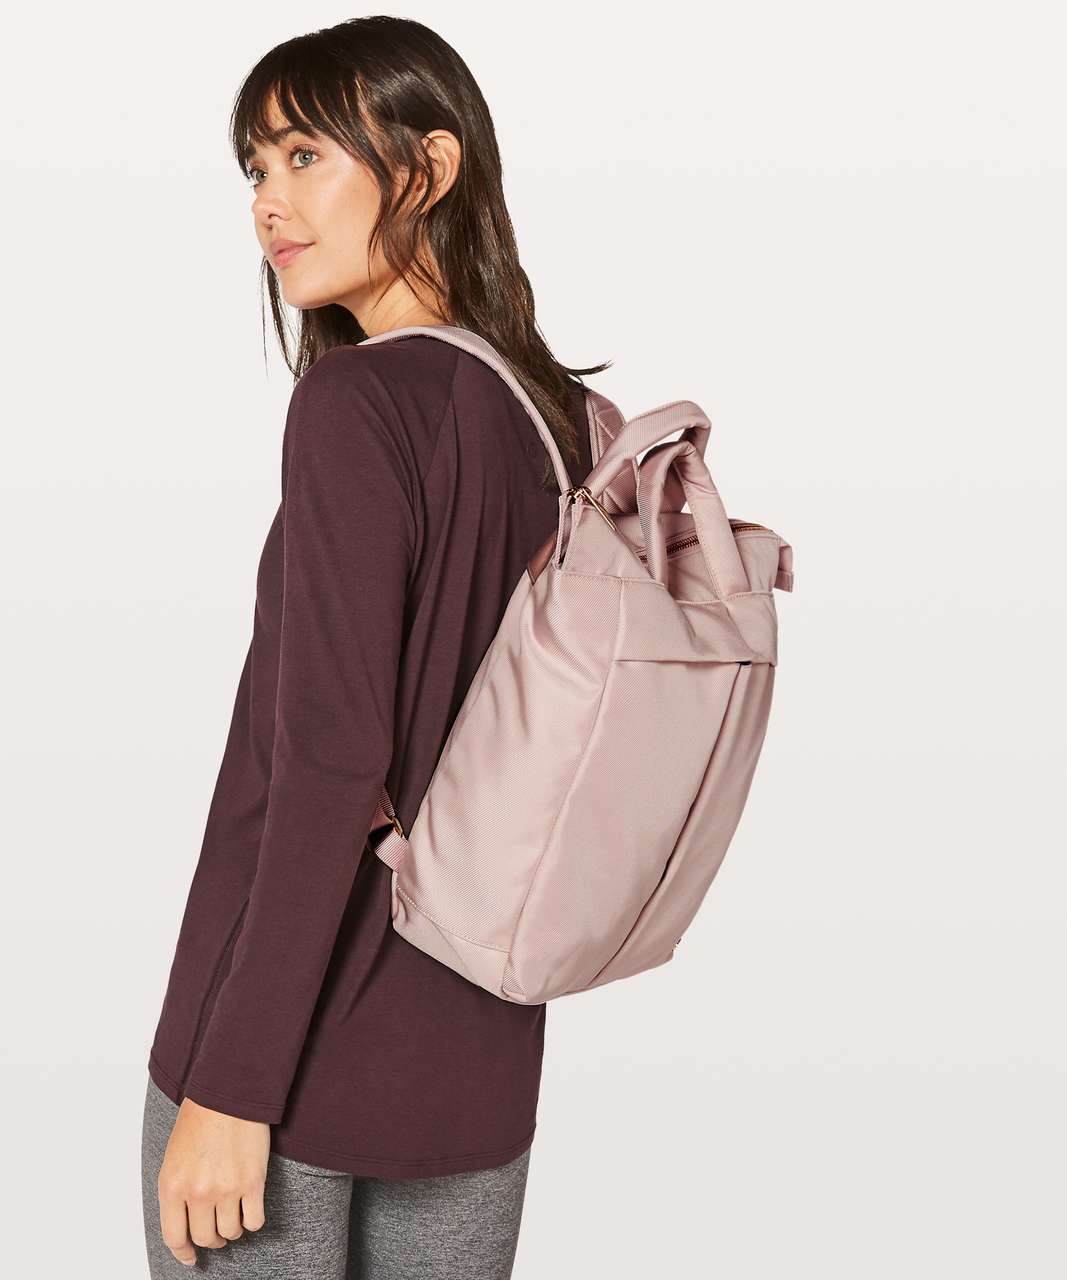 Lululemon City Adventurer Convertible Backpack 15L - Misty Pink